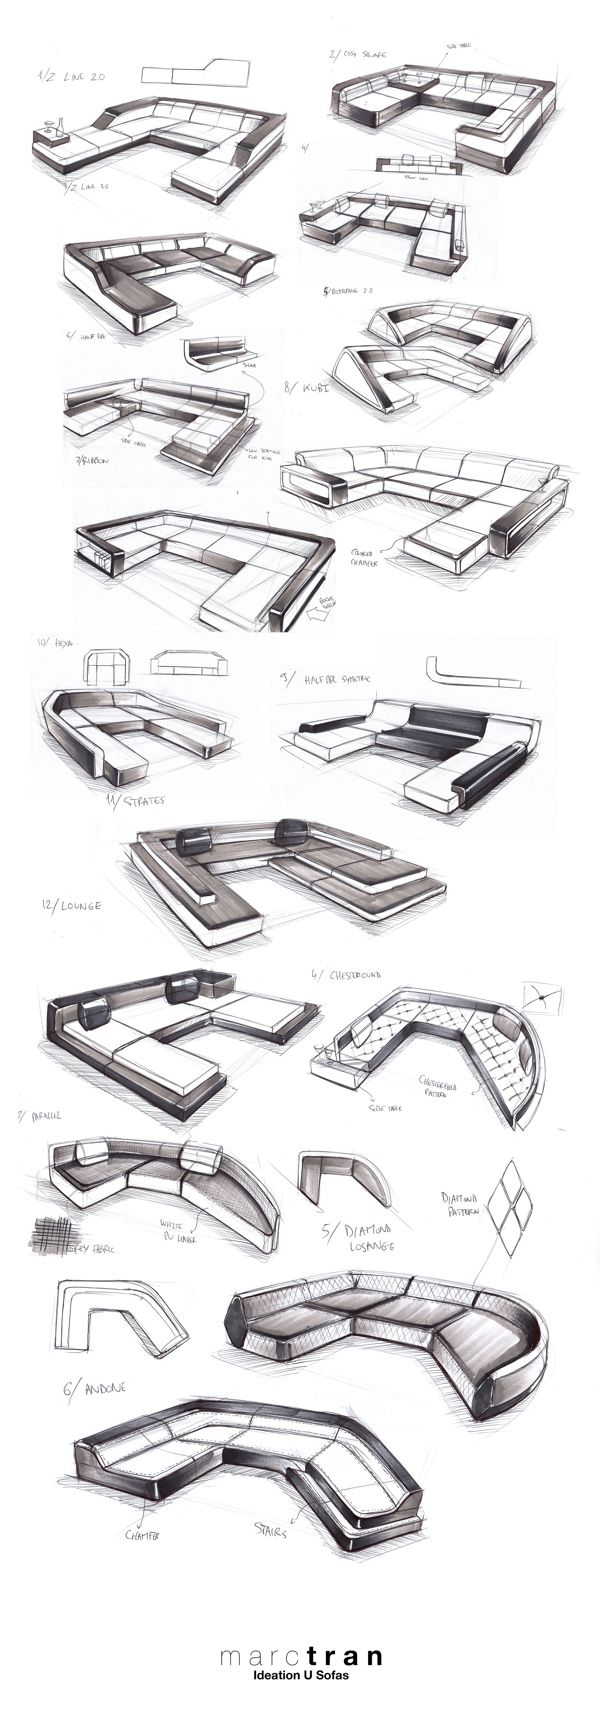 FURNITURE DESIGN - FREELANCE FOR IQLABELS 2013 by Marc TRAN, via Behance